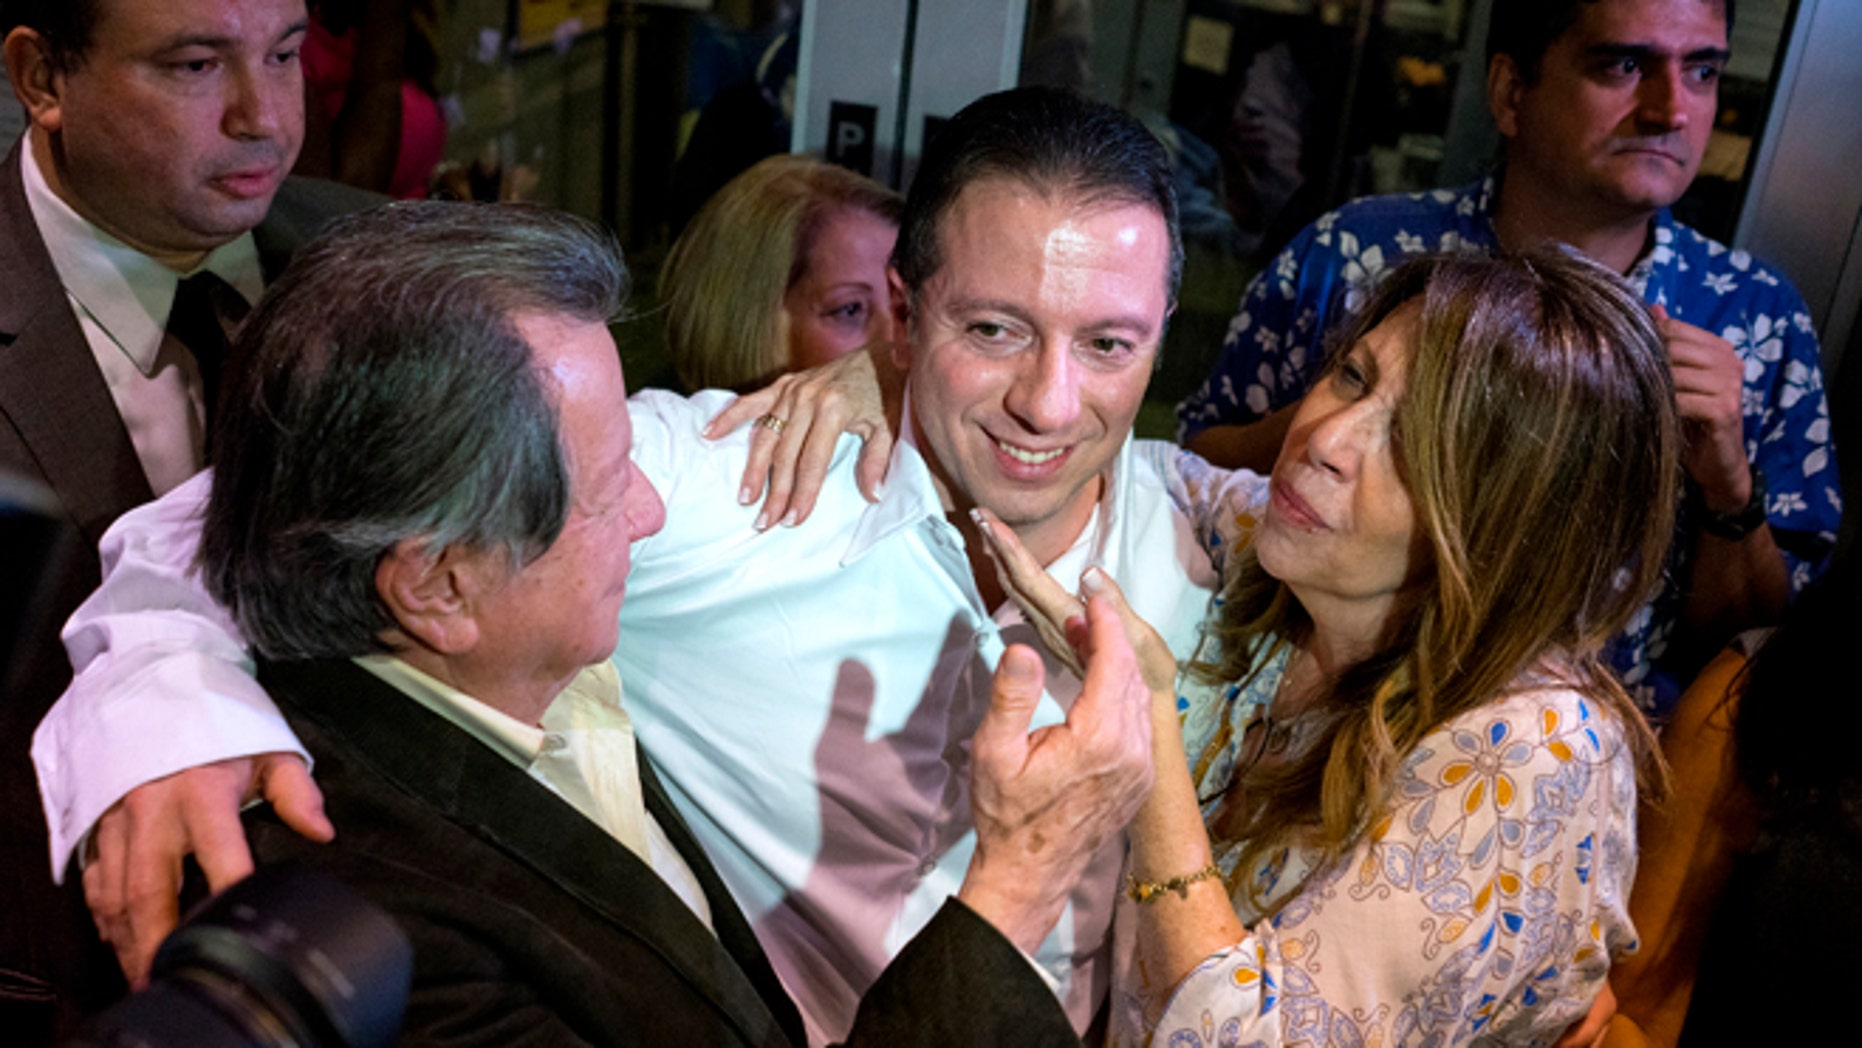 Johnny Hincapie, center, hugs his father Carlos Hincapie and mother Maria Hincapie as he leaves a court building, Tuesday, Oct. 6, 2015, in New York. Johnny Hincapie, imprisoned for a quarter-century in a notorious tourist killing, was granted a new trial and freed on Tuesday, after a judge overturned his conviction in a case that helped crystallize an era of crime and fear in the nation's biggest city. (AP Photo/Craig Ruttle)